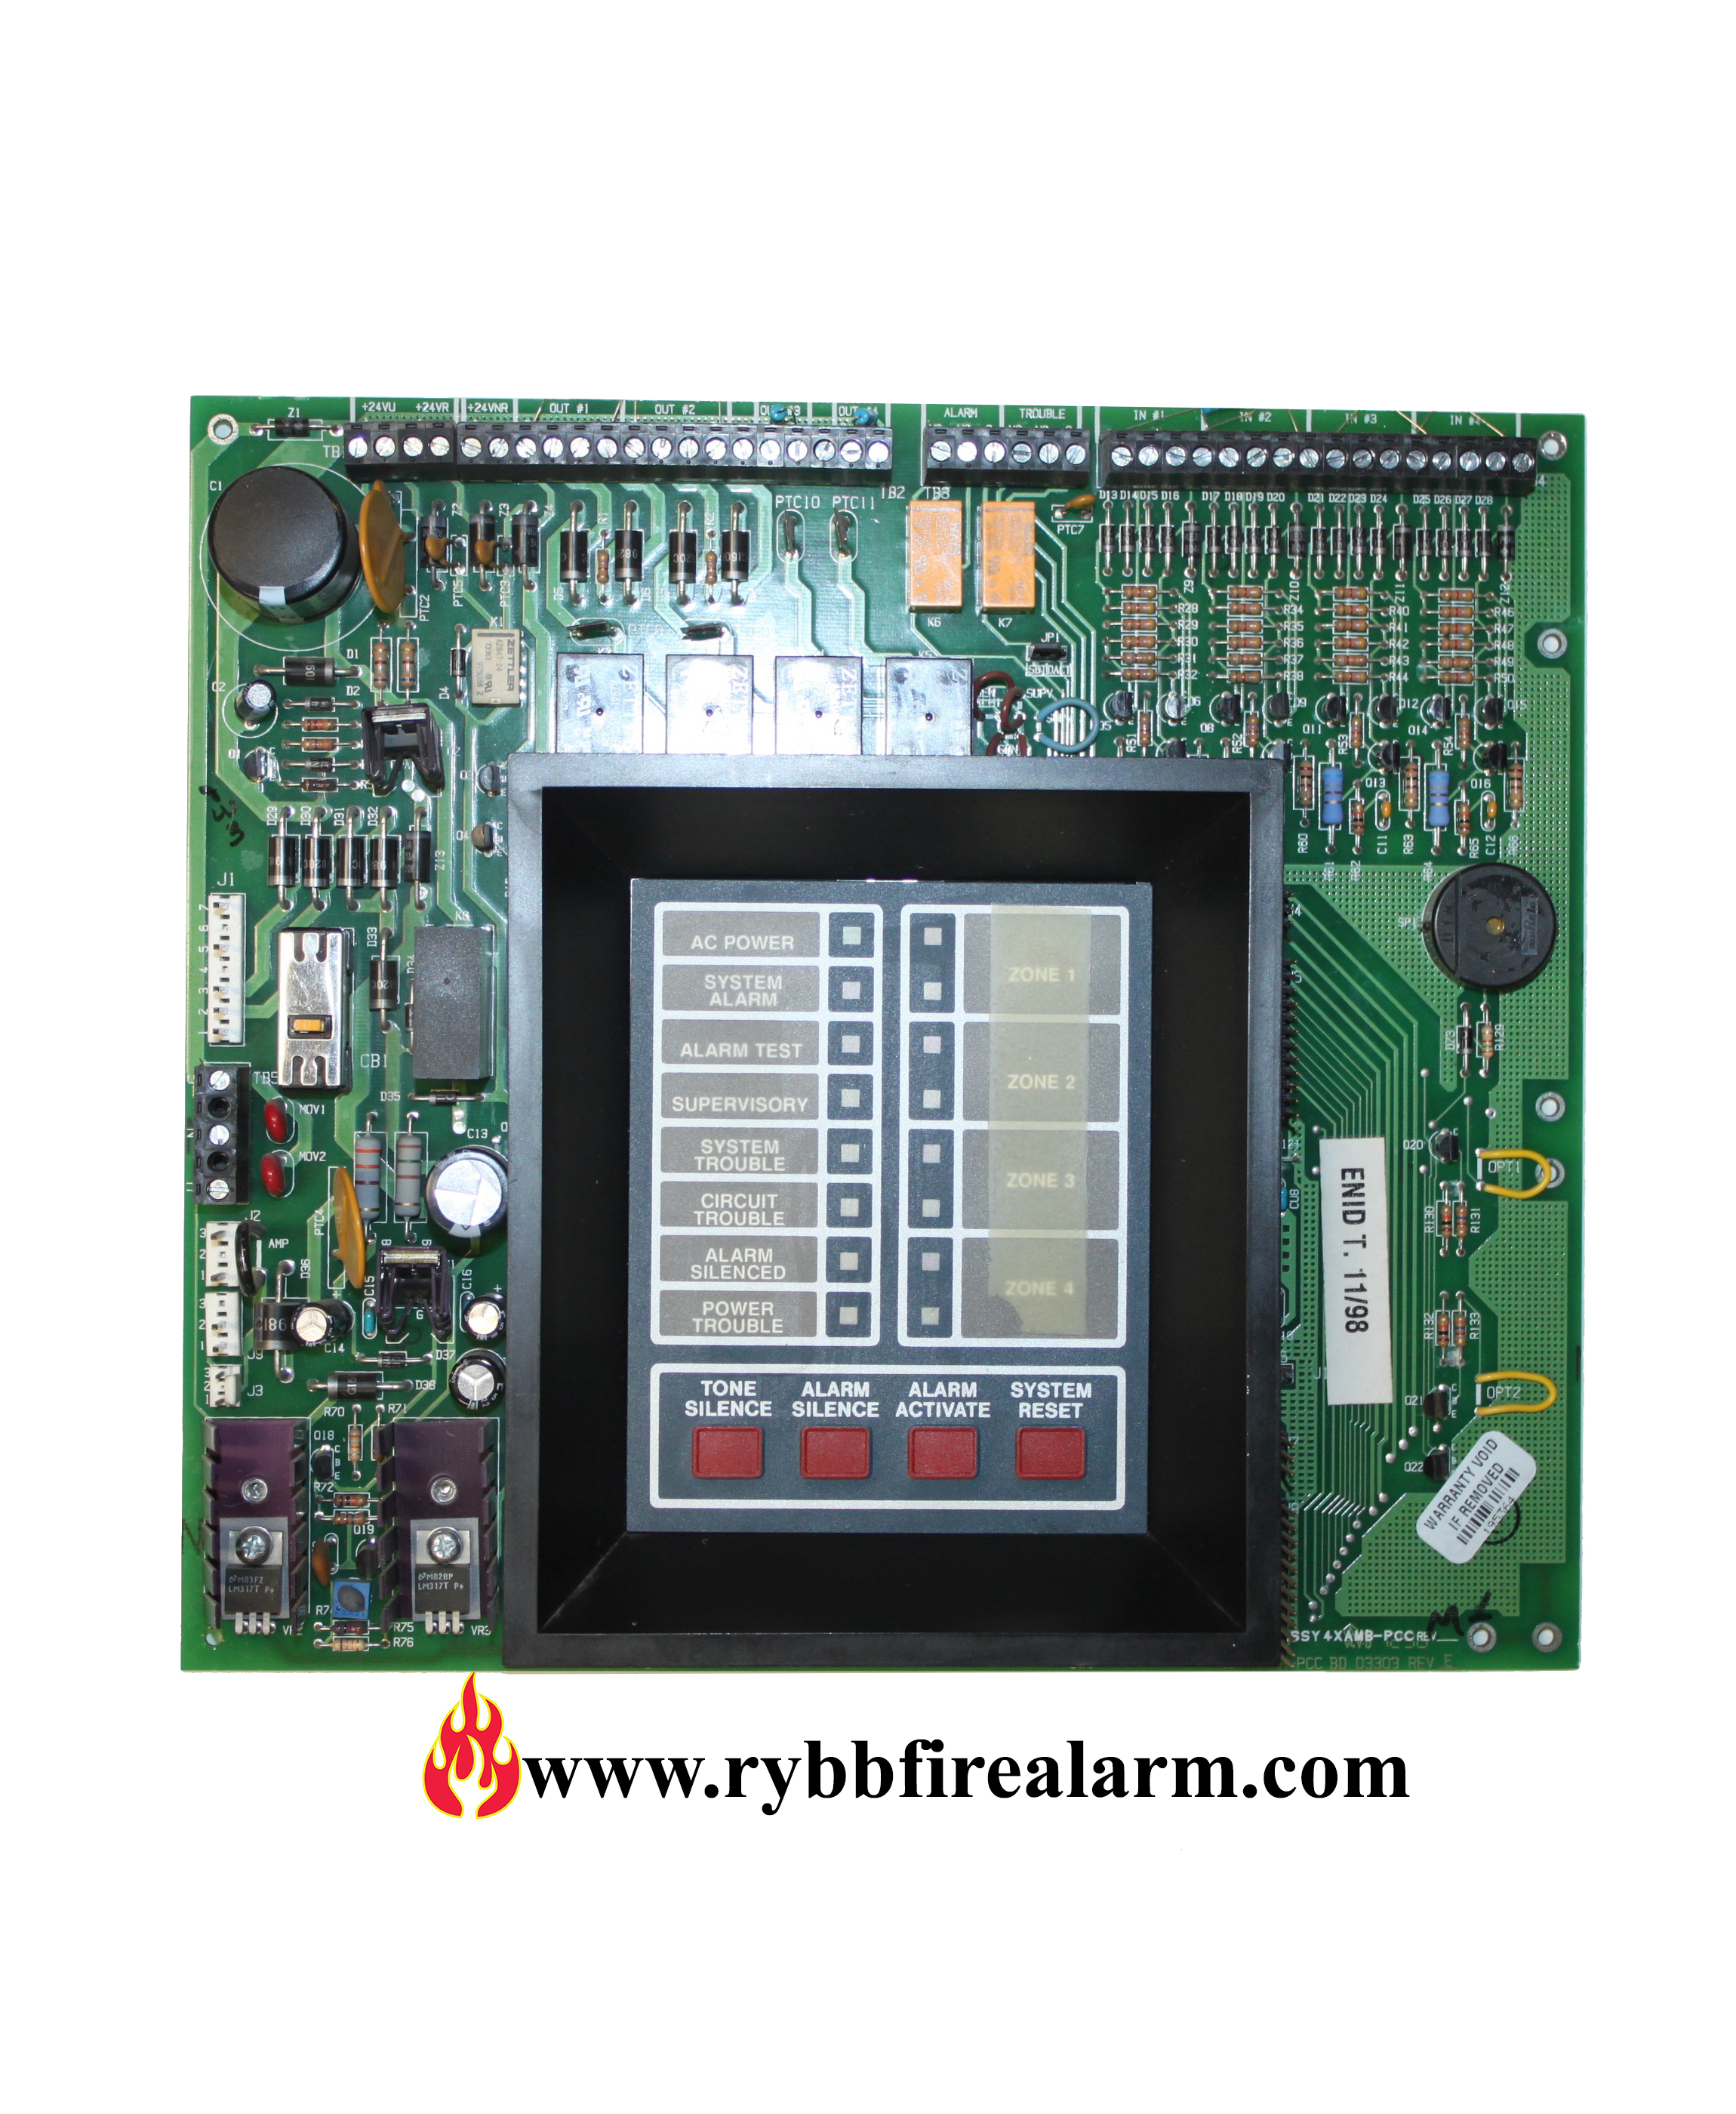 notifier sfp 400 replacement board rybb fire alarm parts service rh rybbfirealarm com Notifier System 5000 Operation Manual Notifier Nfw2 100 Manual